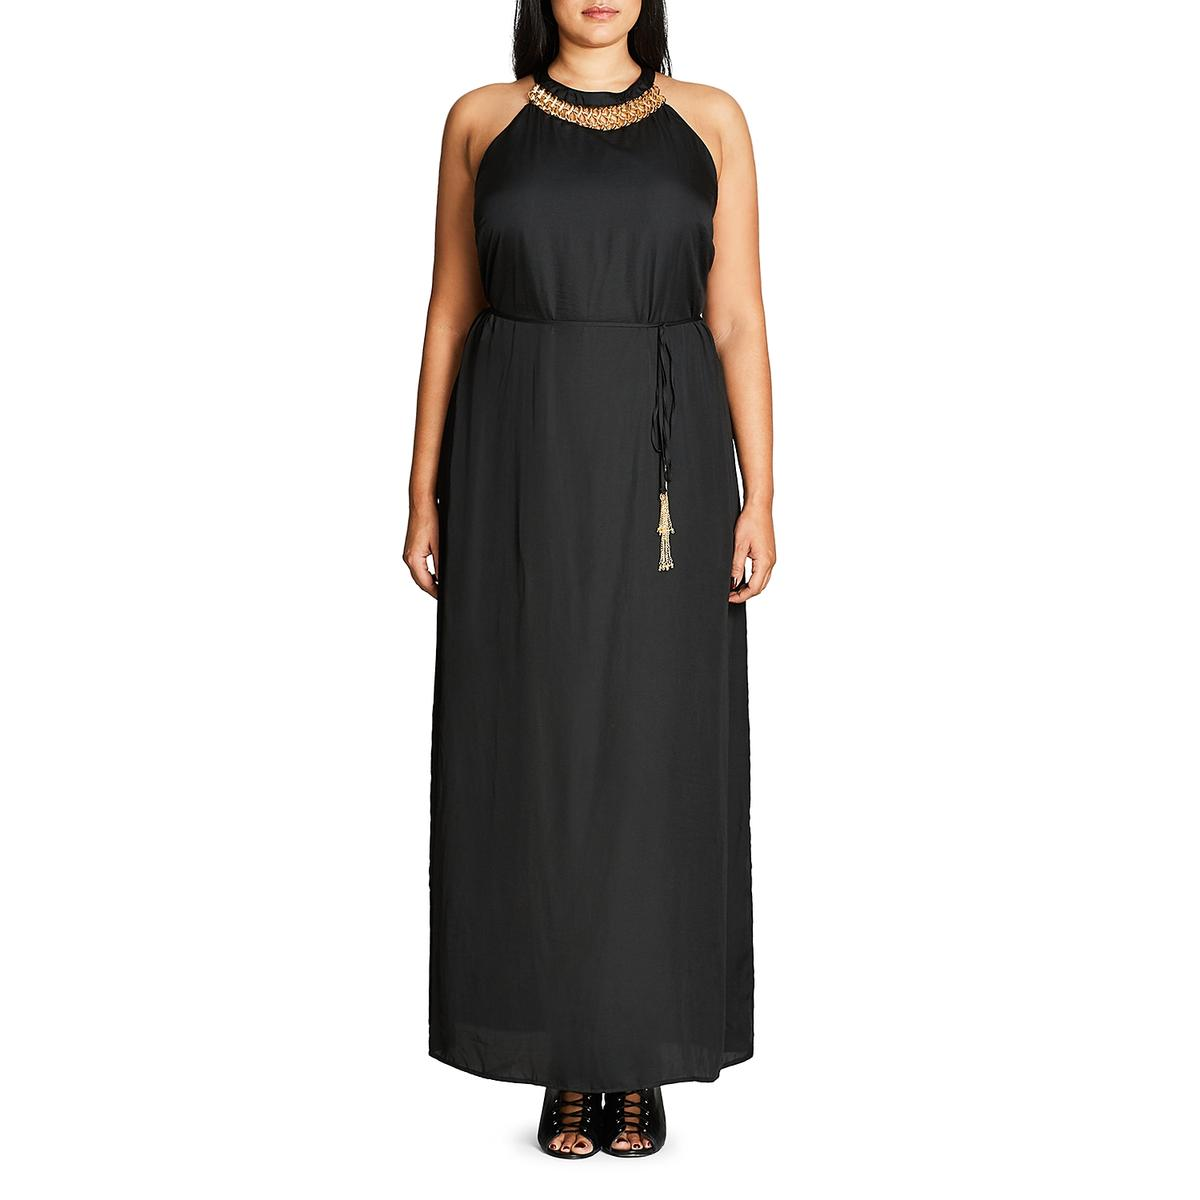 ac428b15e42 City Chic Womens Black Embellished Maxi Dress Gown Plus 18 M BHFO ...